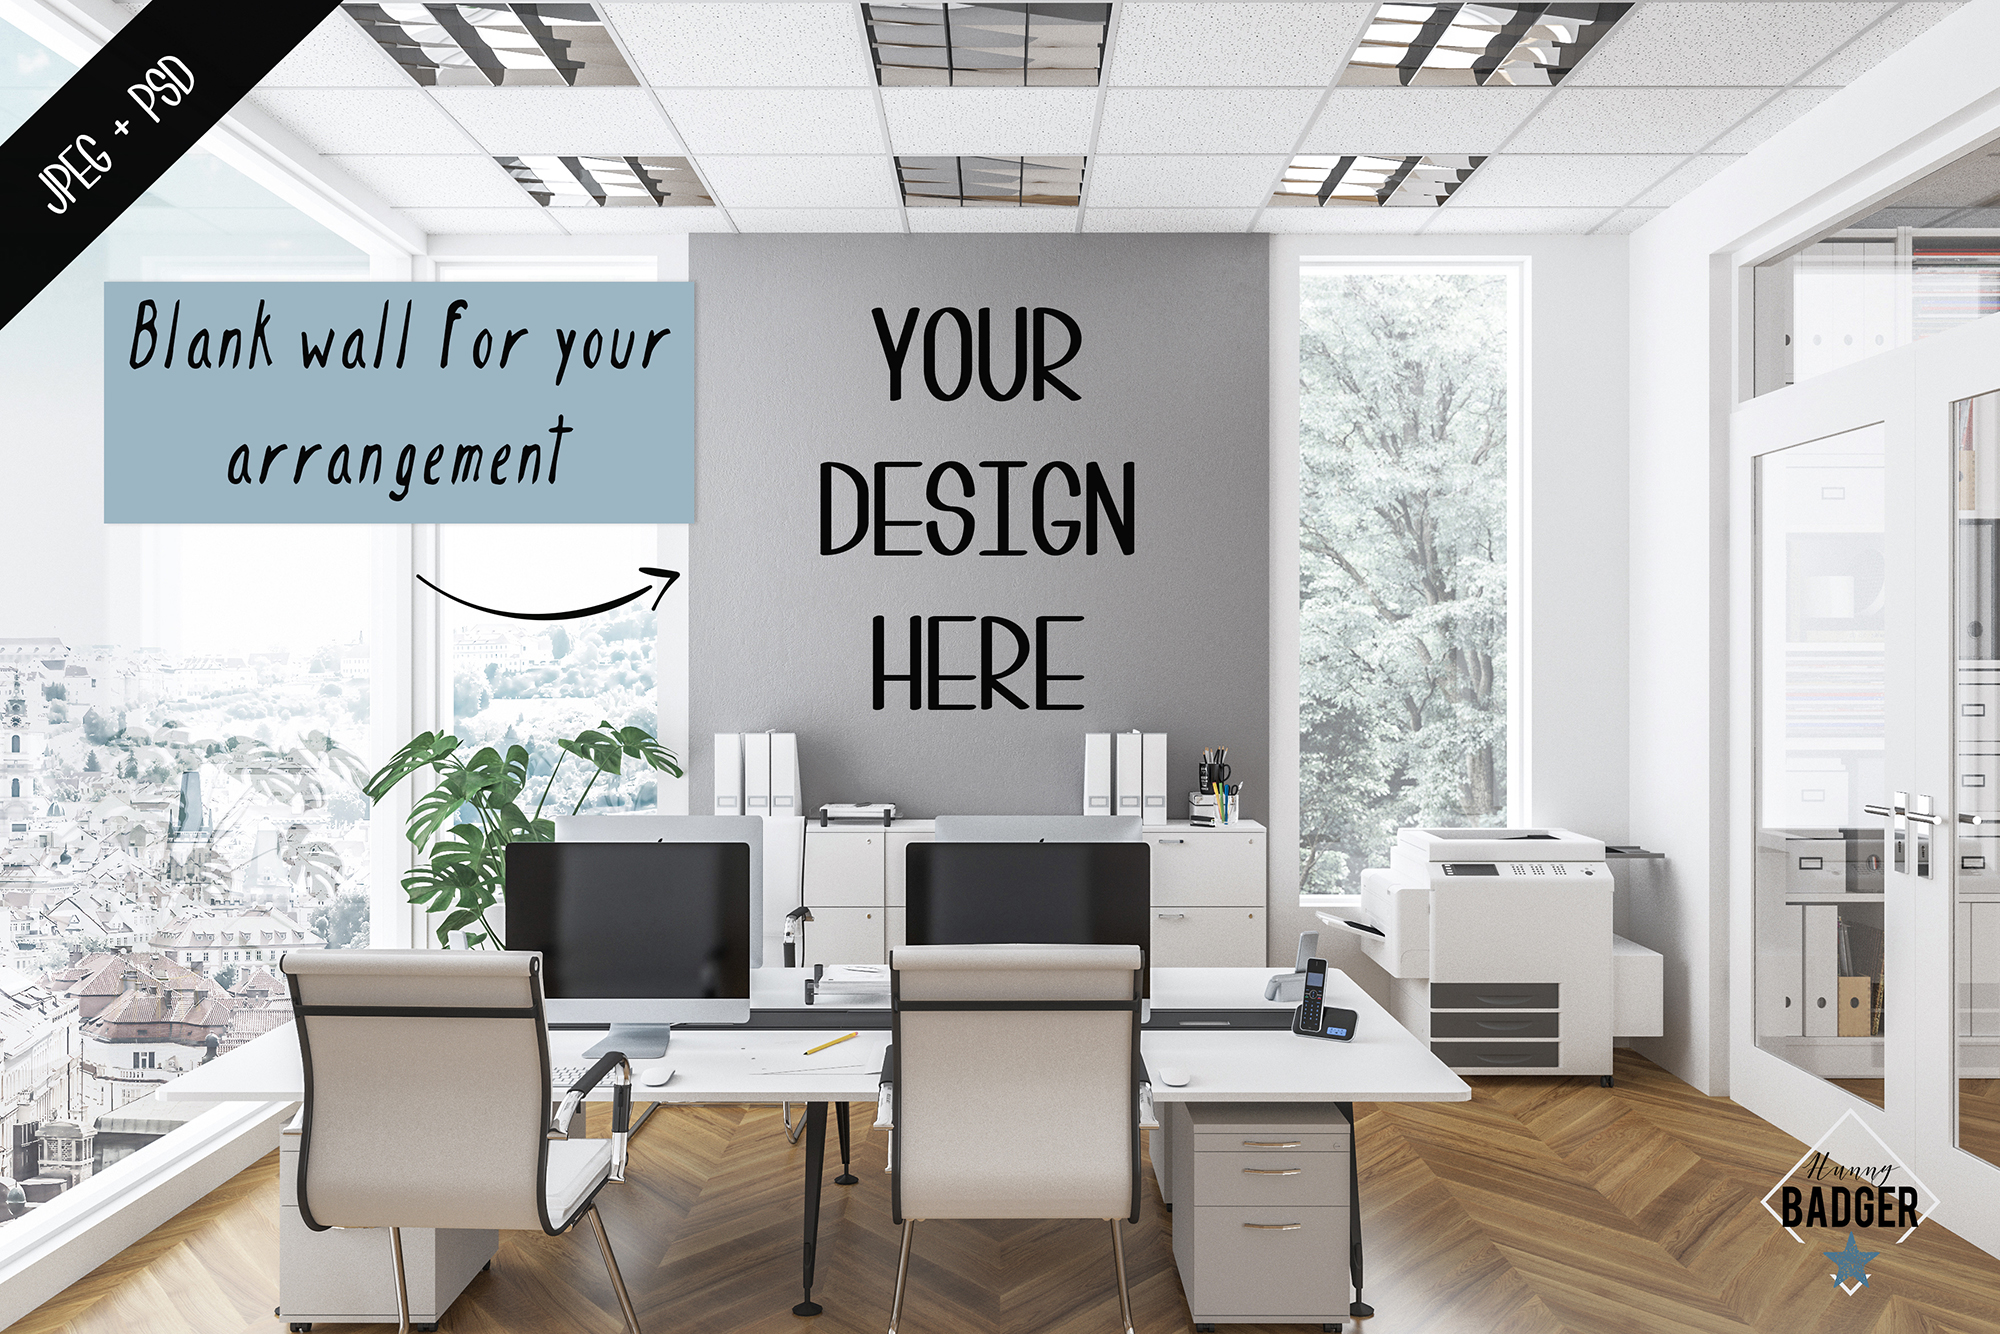 Office interior mockup - frame & wall mockup creator example image 6